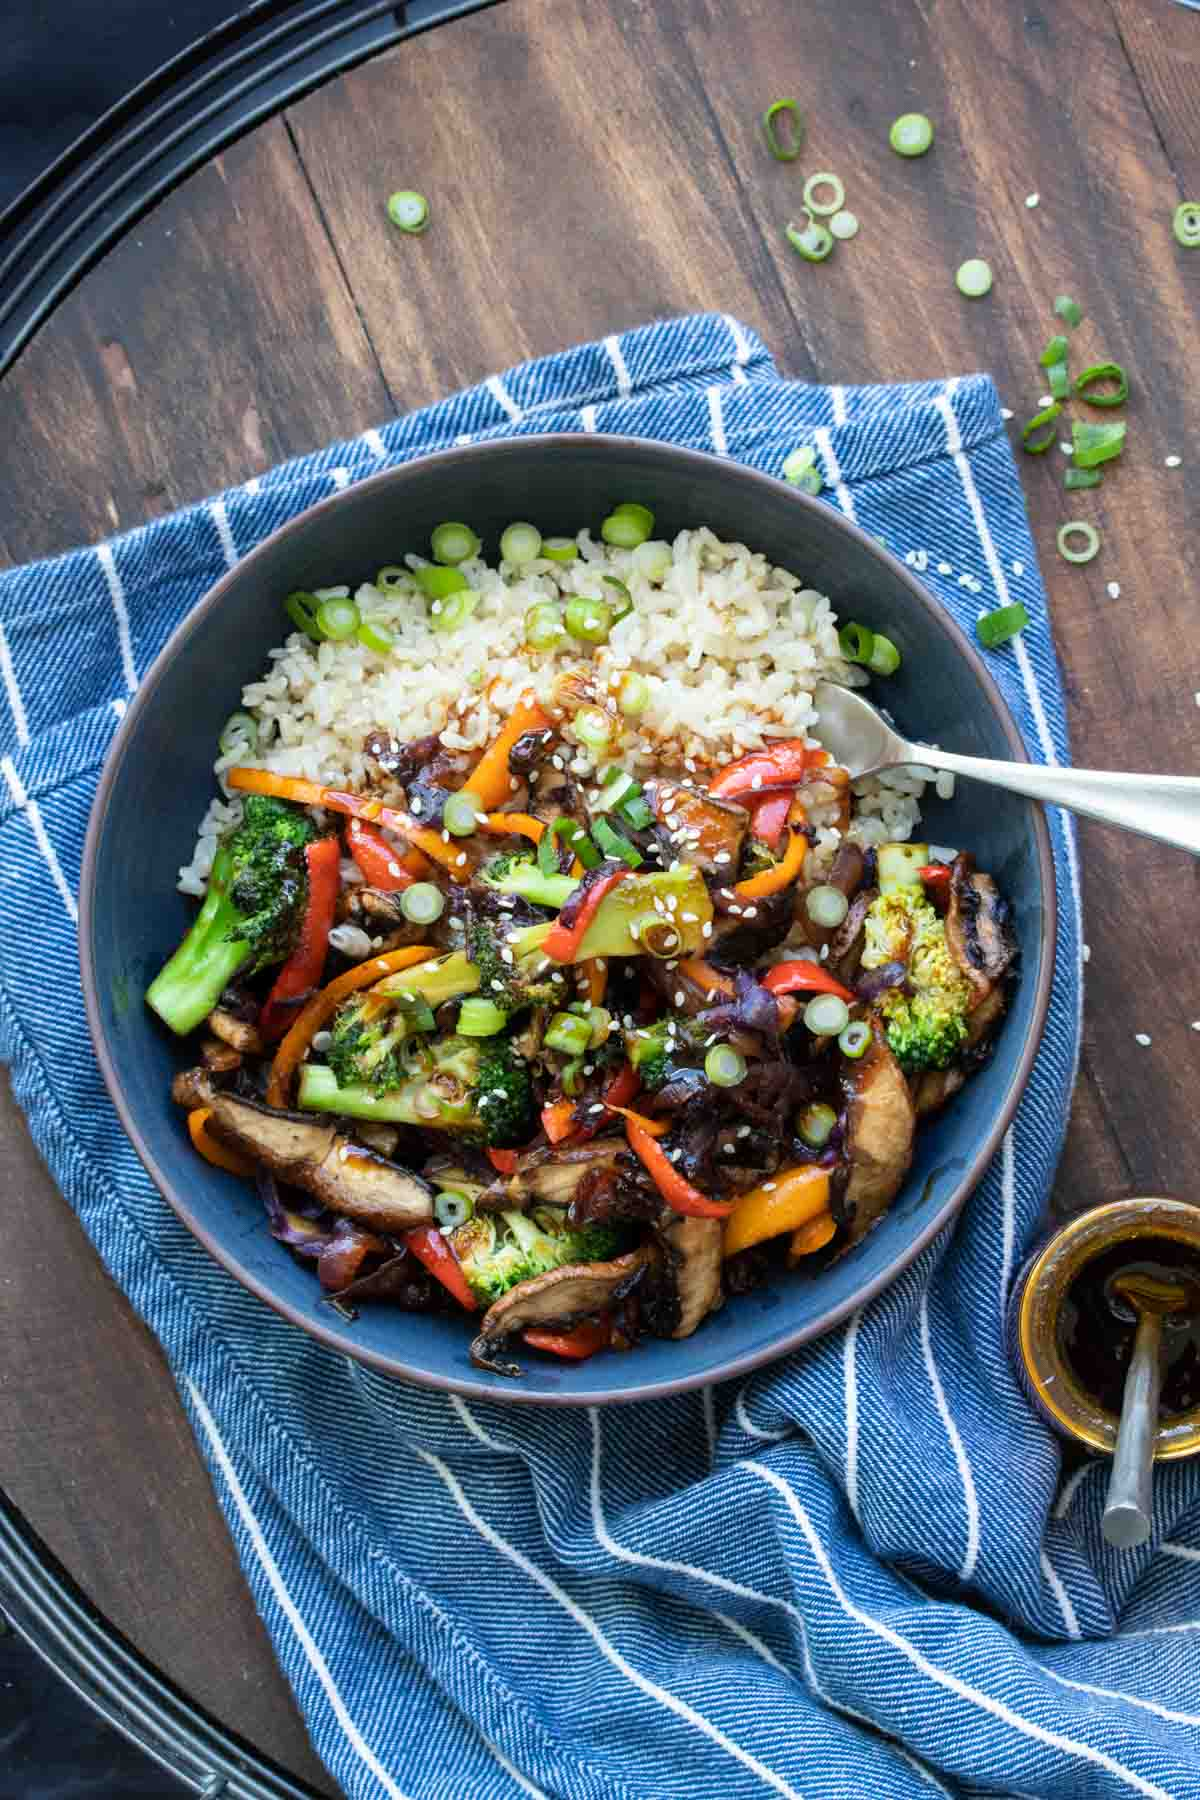 Vegetable Teriyaki Stir Fry Veggies Don T Bite